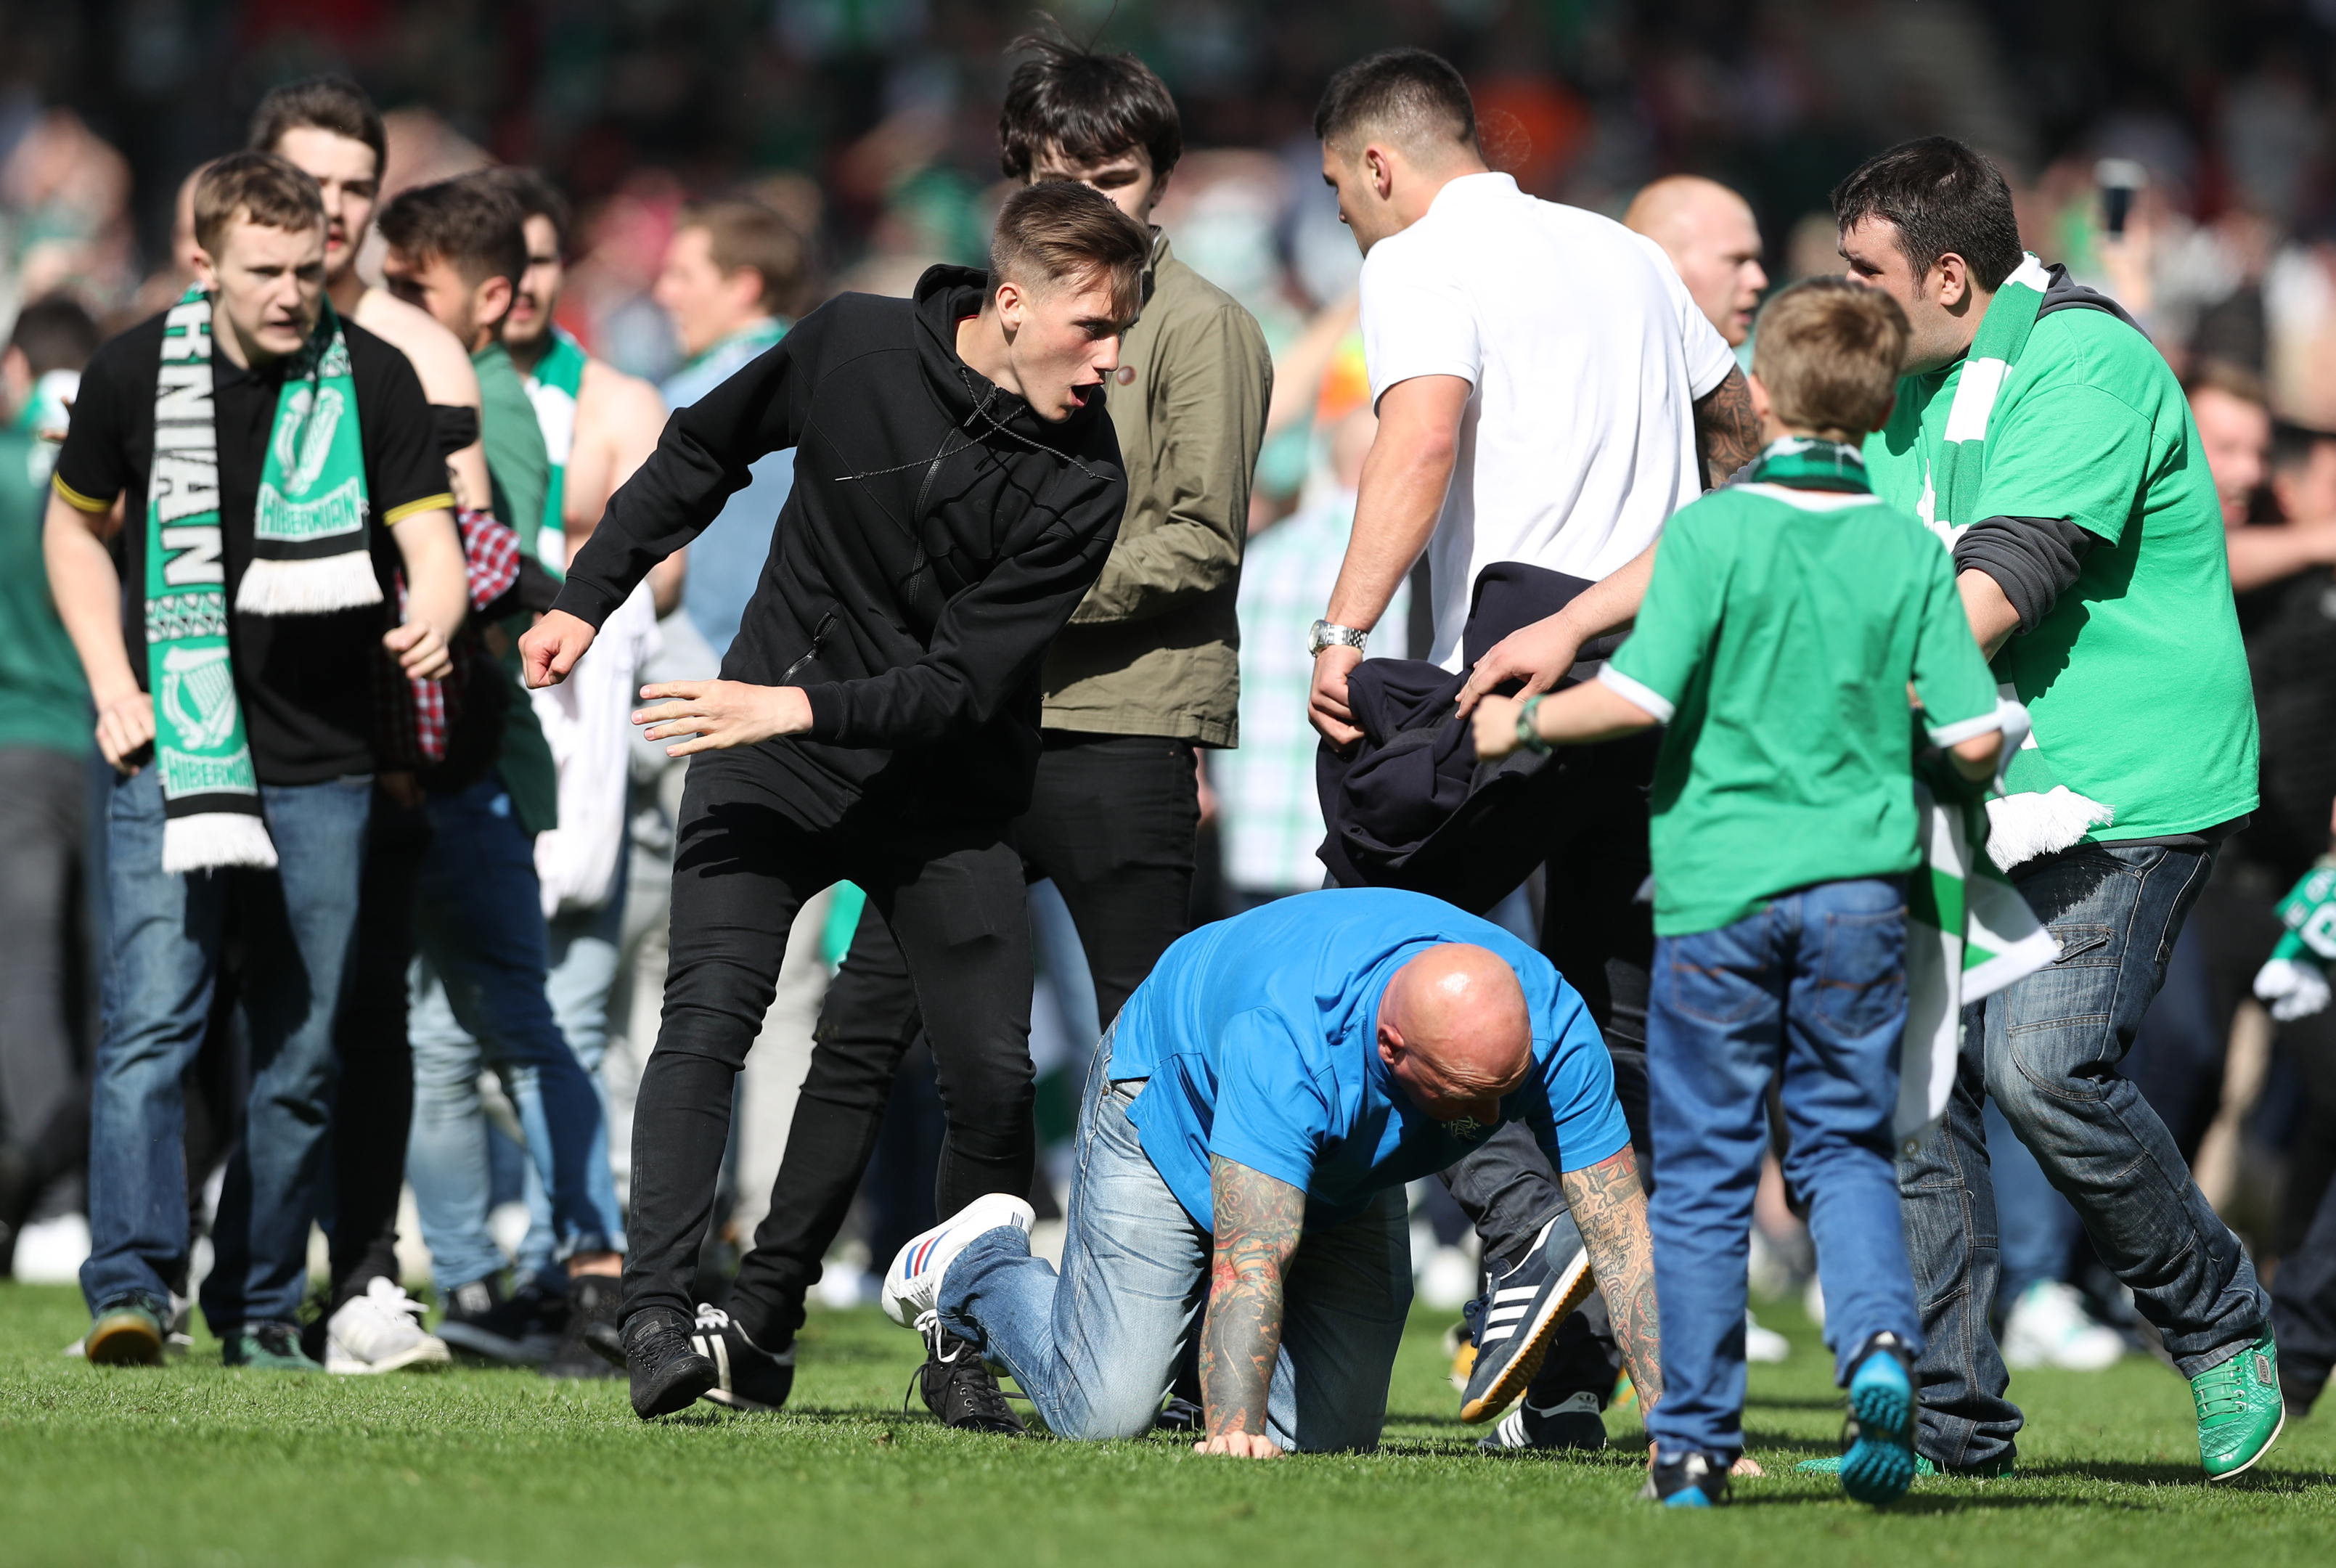 Fans fight on the pitch after the Scottish Cup Final between Rangers and Hibernian.